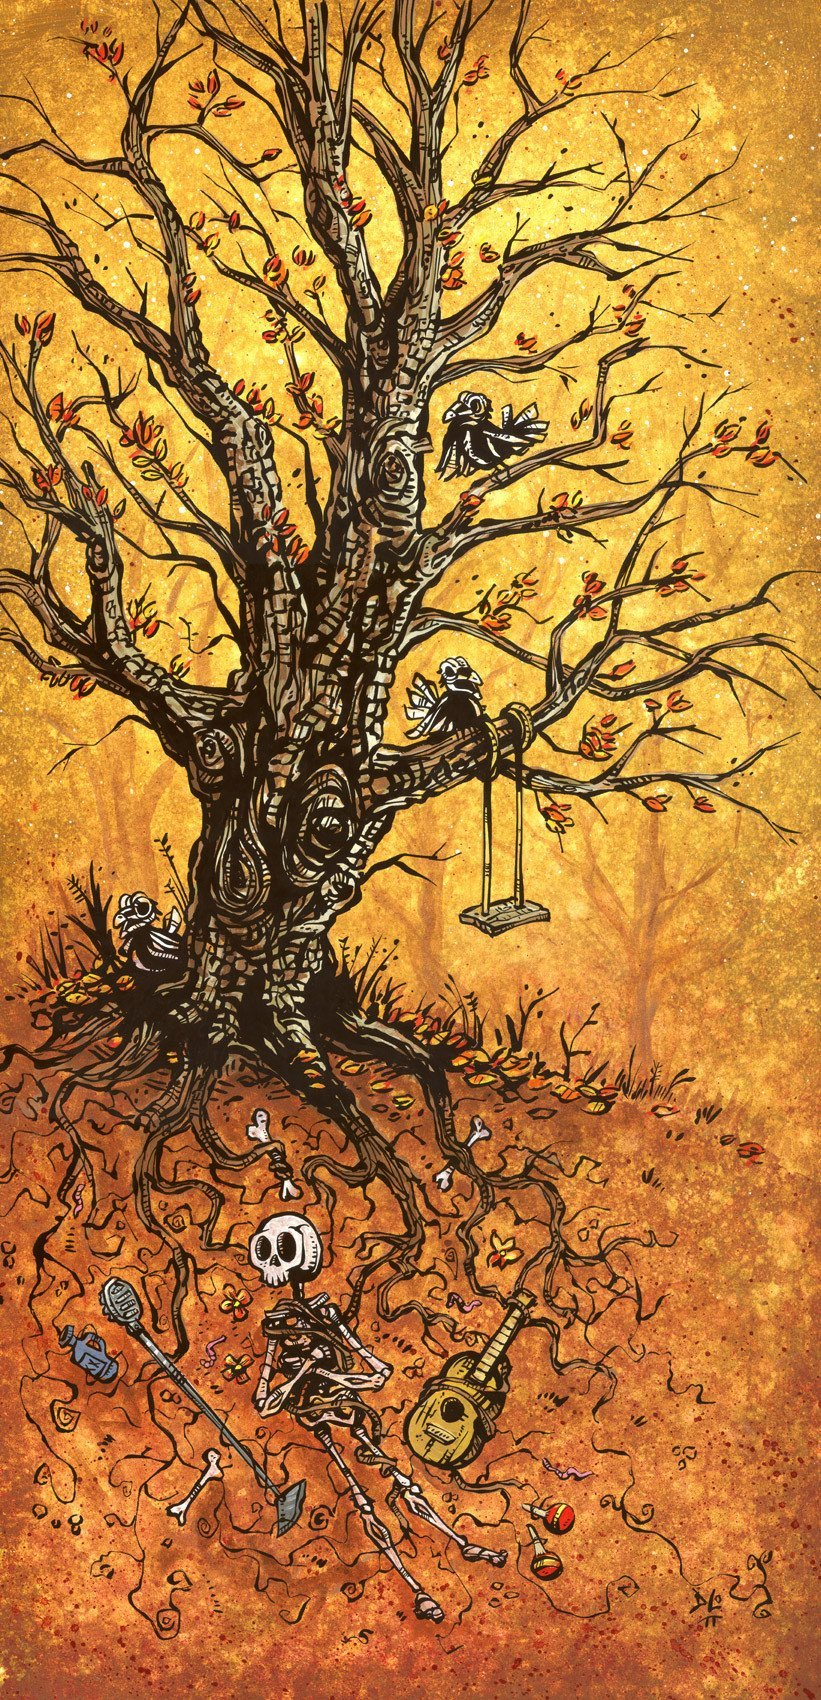 Tree of Life by Day of the Dead Artist David Lozeau, Dia de los Muertos, Muertos, Sugar Skull